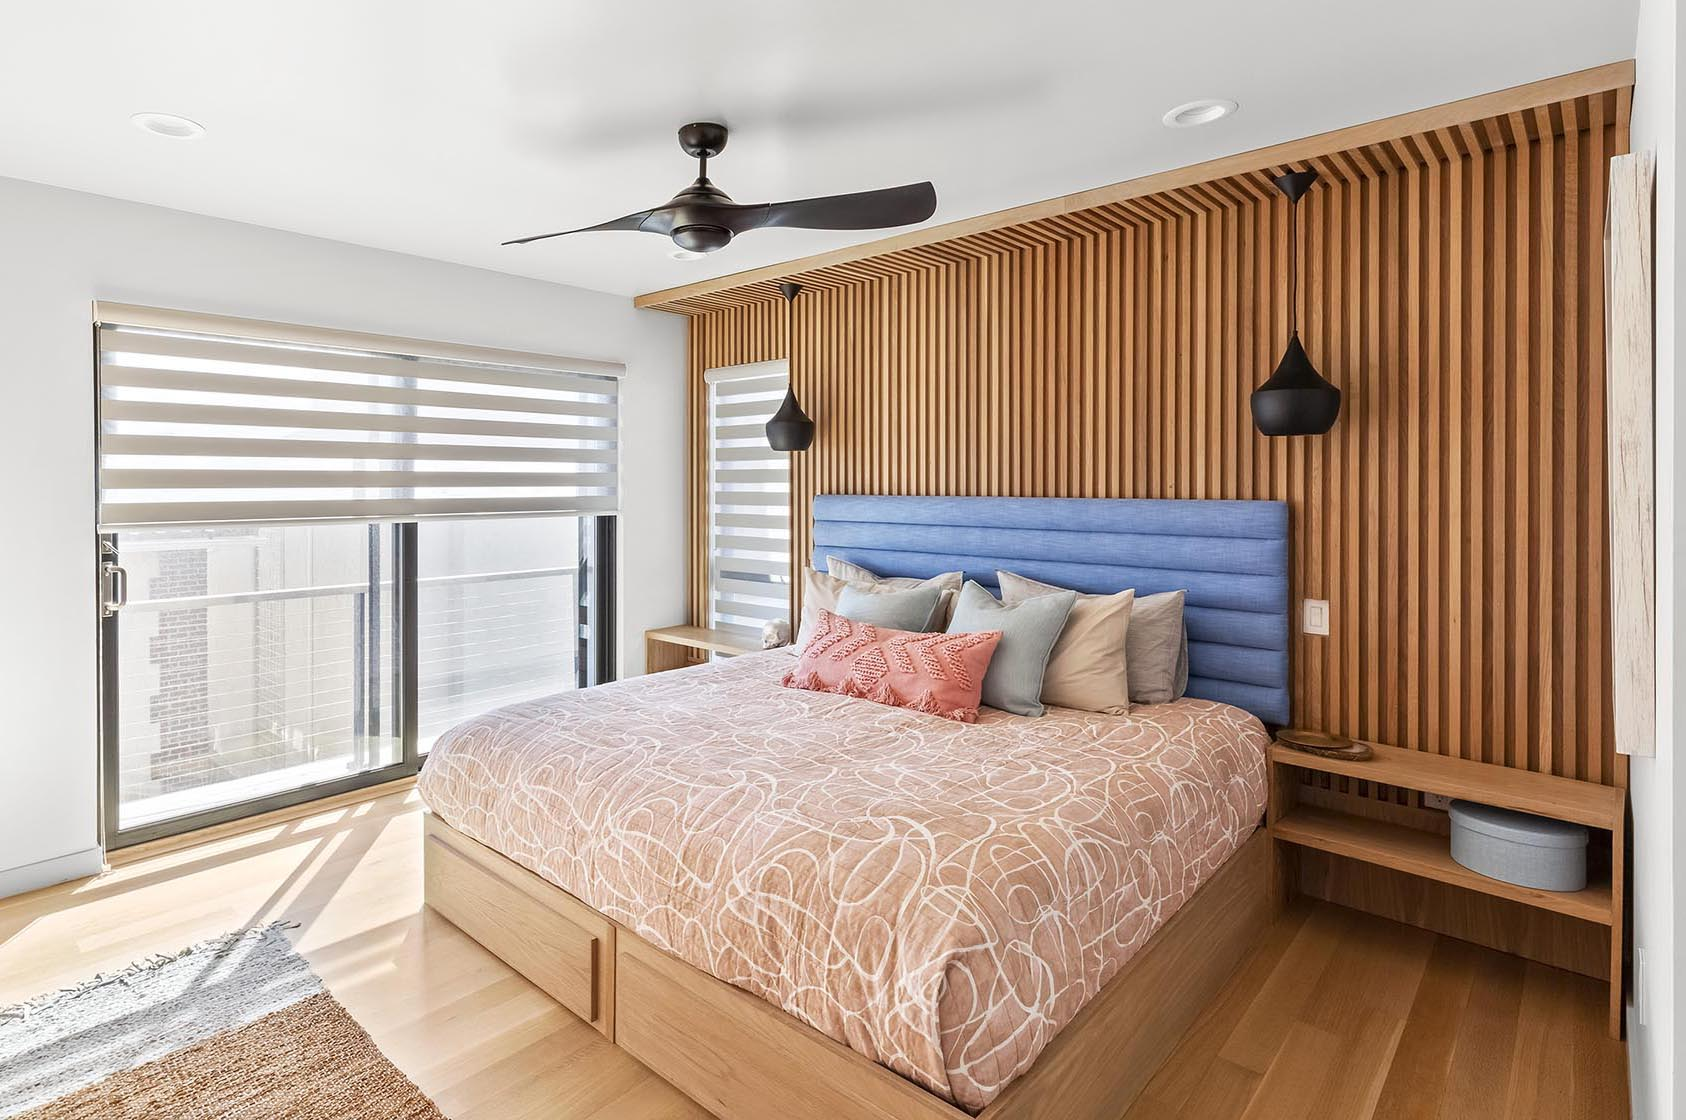 A modern bedroom with a wood accent wall.